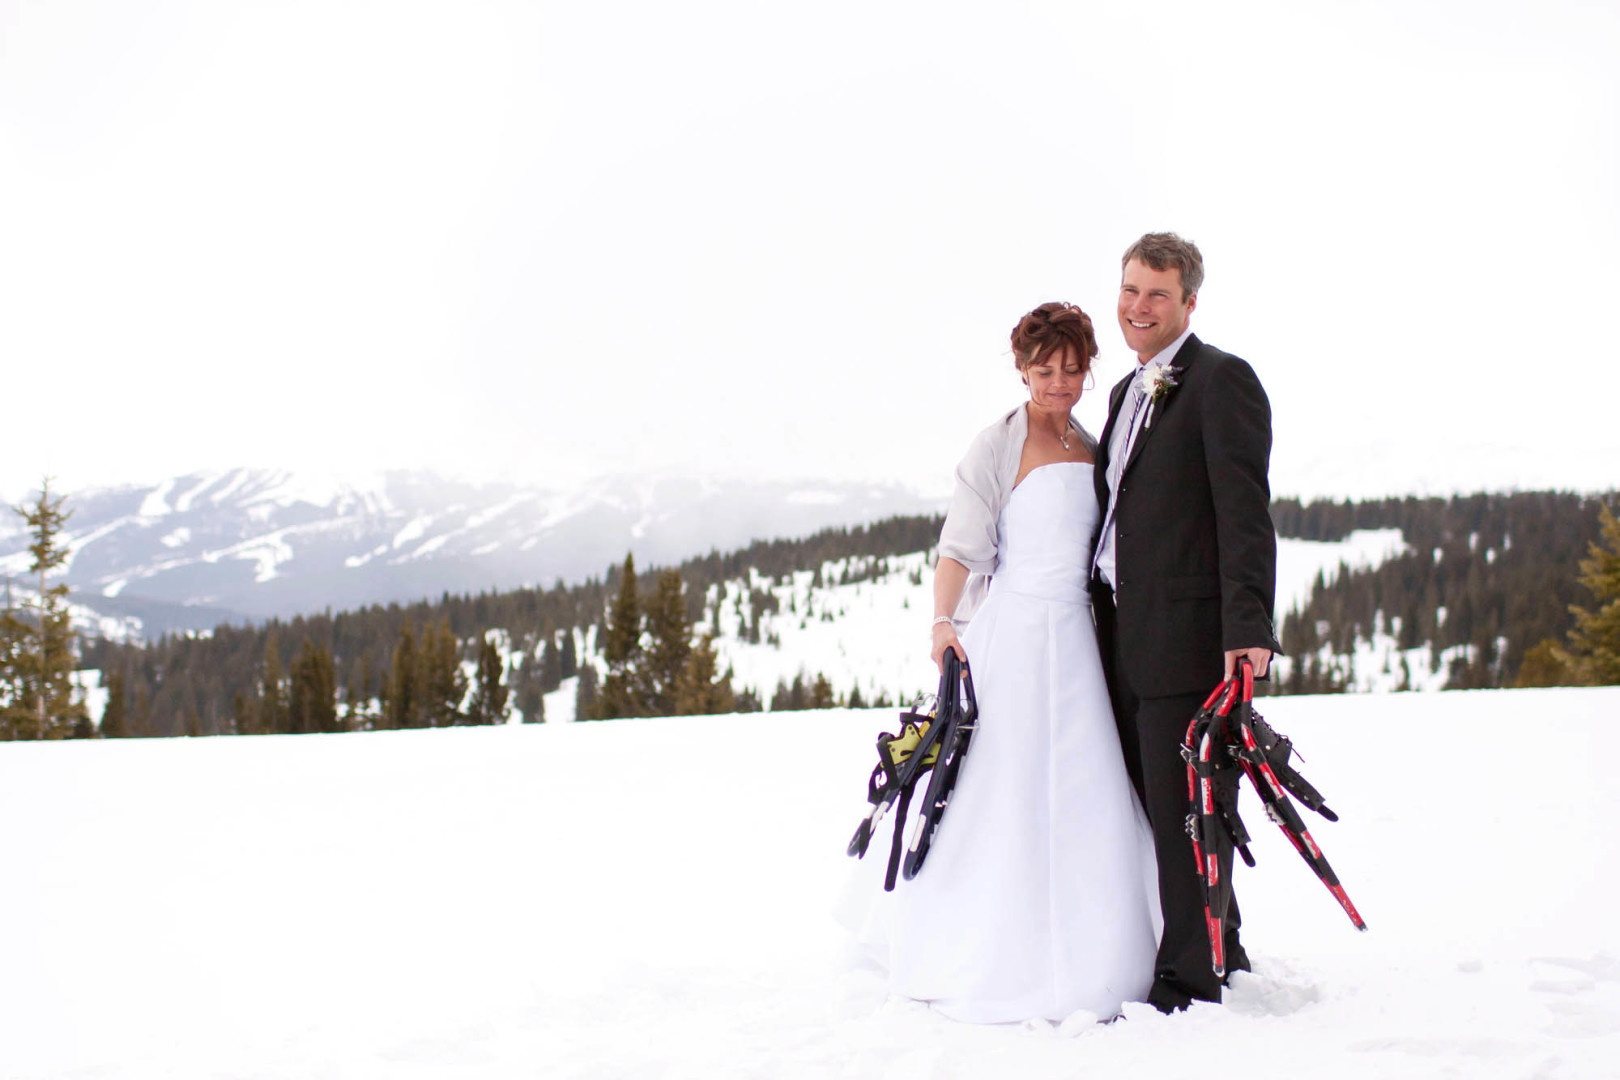 snowshoe wedding,  Shrine Mountain Wedding, Vail, Colorado Photographer,InternationalPhotographer, Desiree Mostad, bryllup fotograf, Rivetsand Roses,Scandinavian Wedding, Snowy Spring